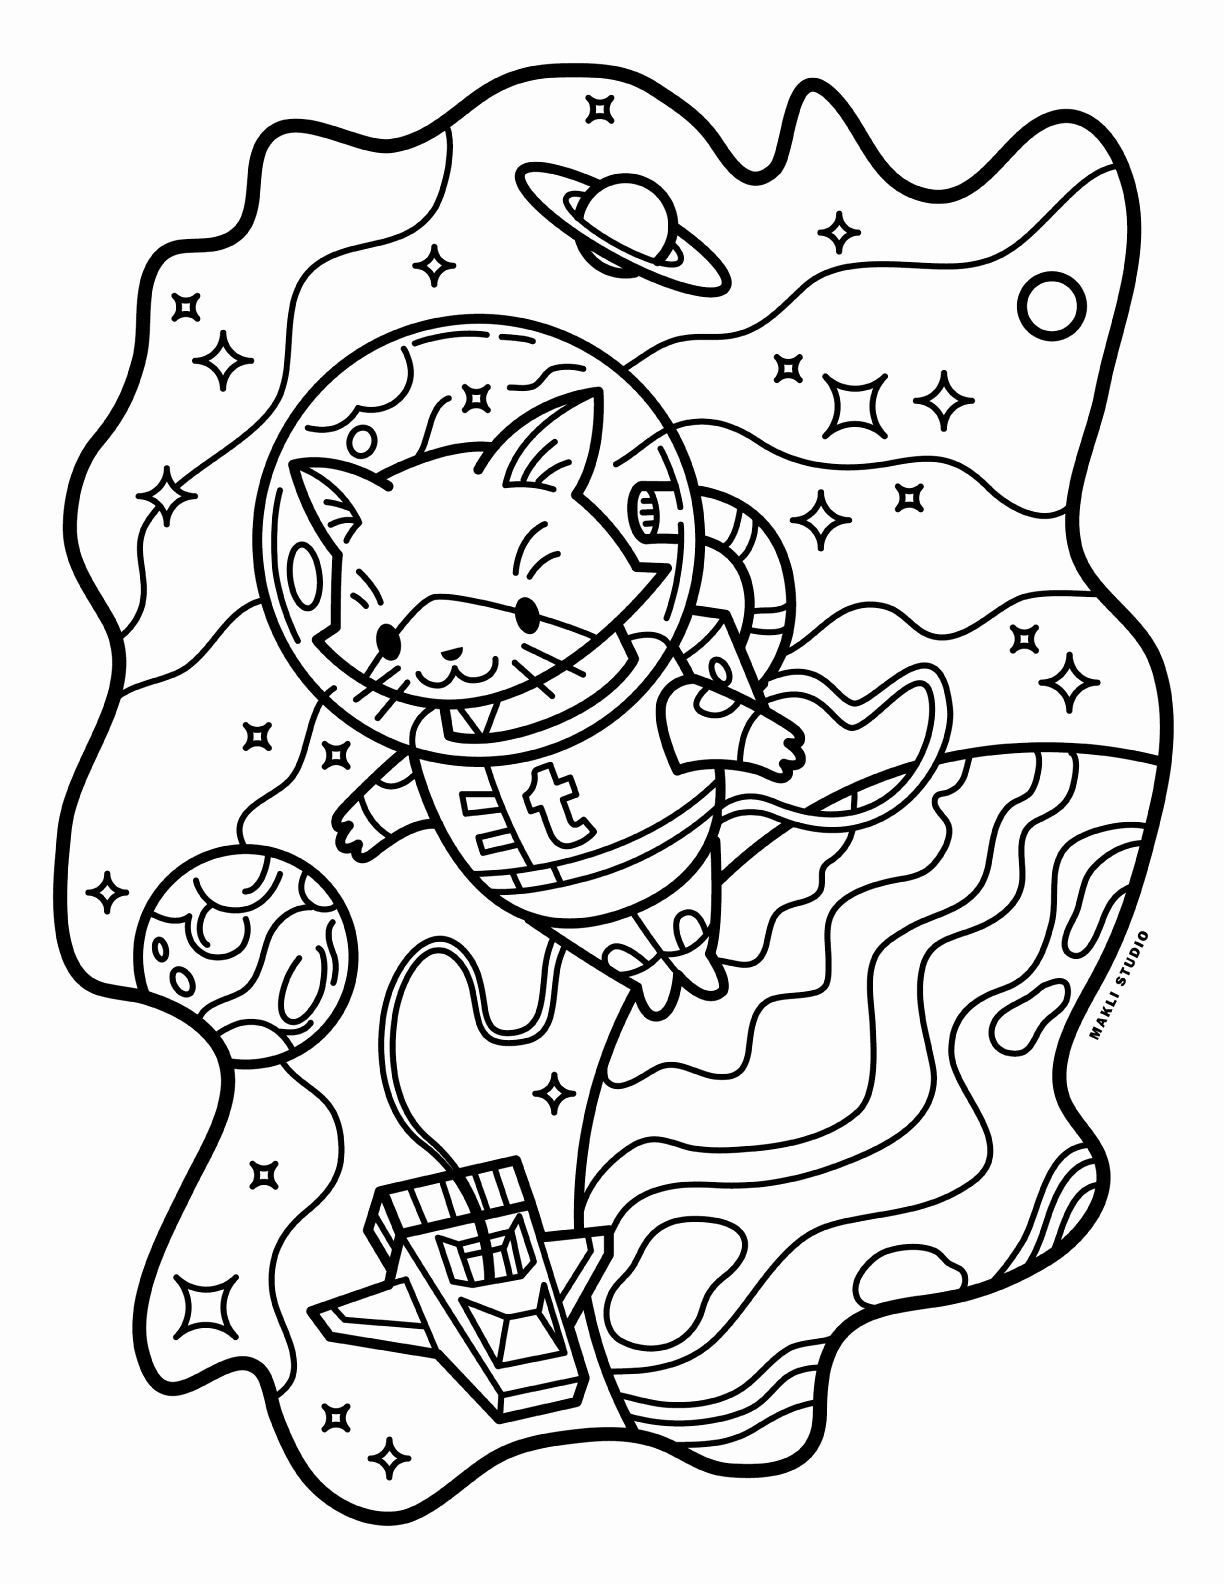 Coloring Sheets Outer Space Lovely Aesthetic Space Tumblr Coloring Pages Kesho Wazo Space Coloring Pages Tumblr Coloring Pages Planet Coloring Pages